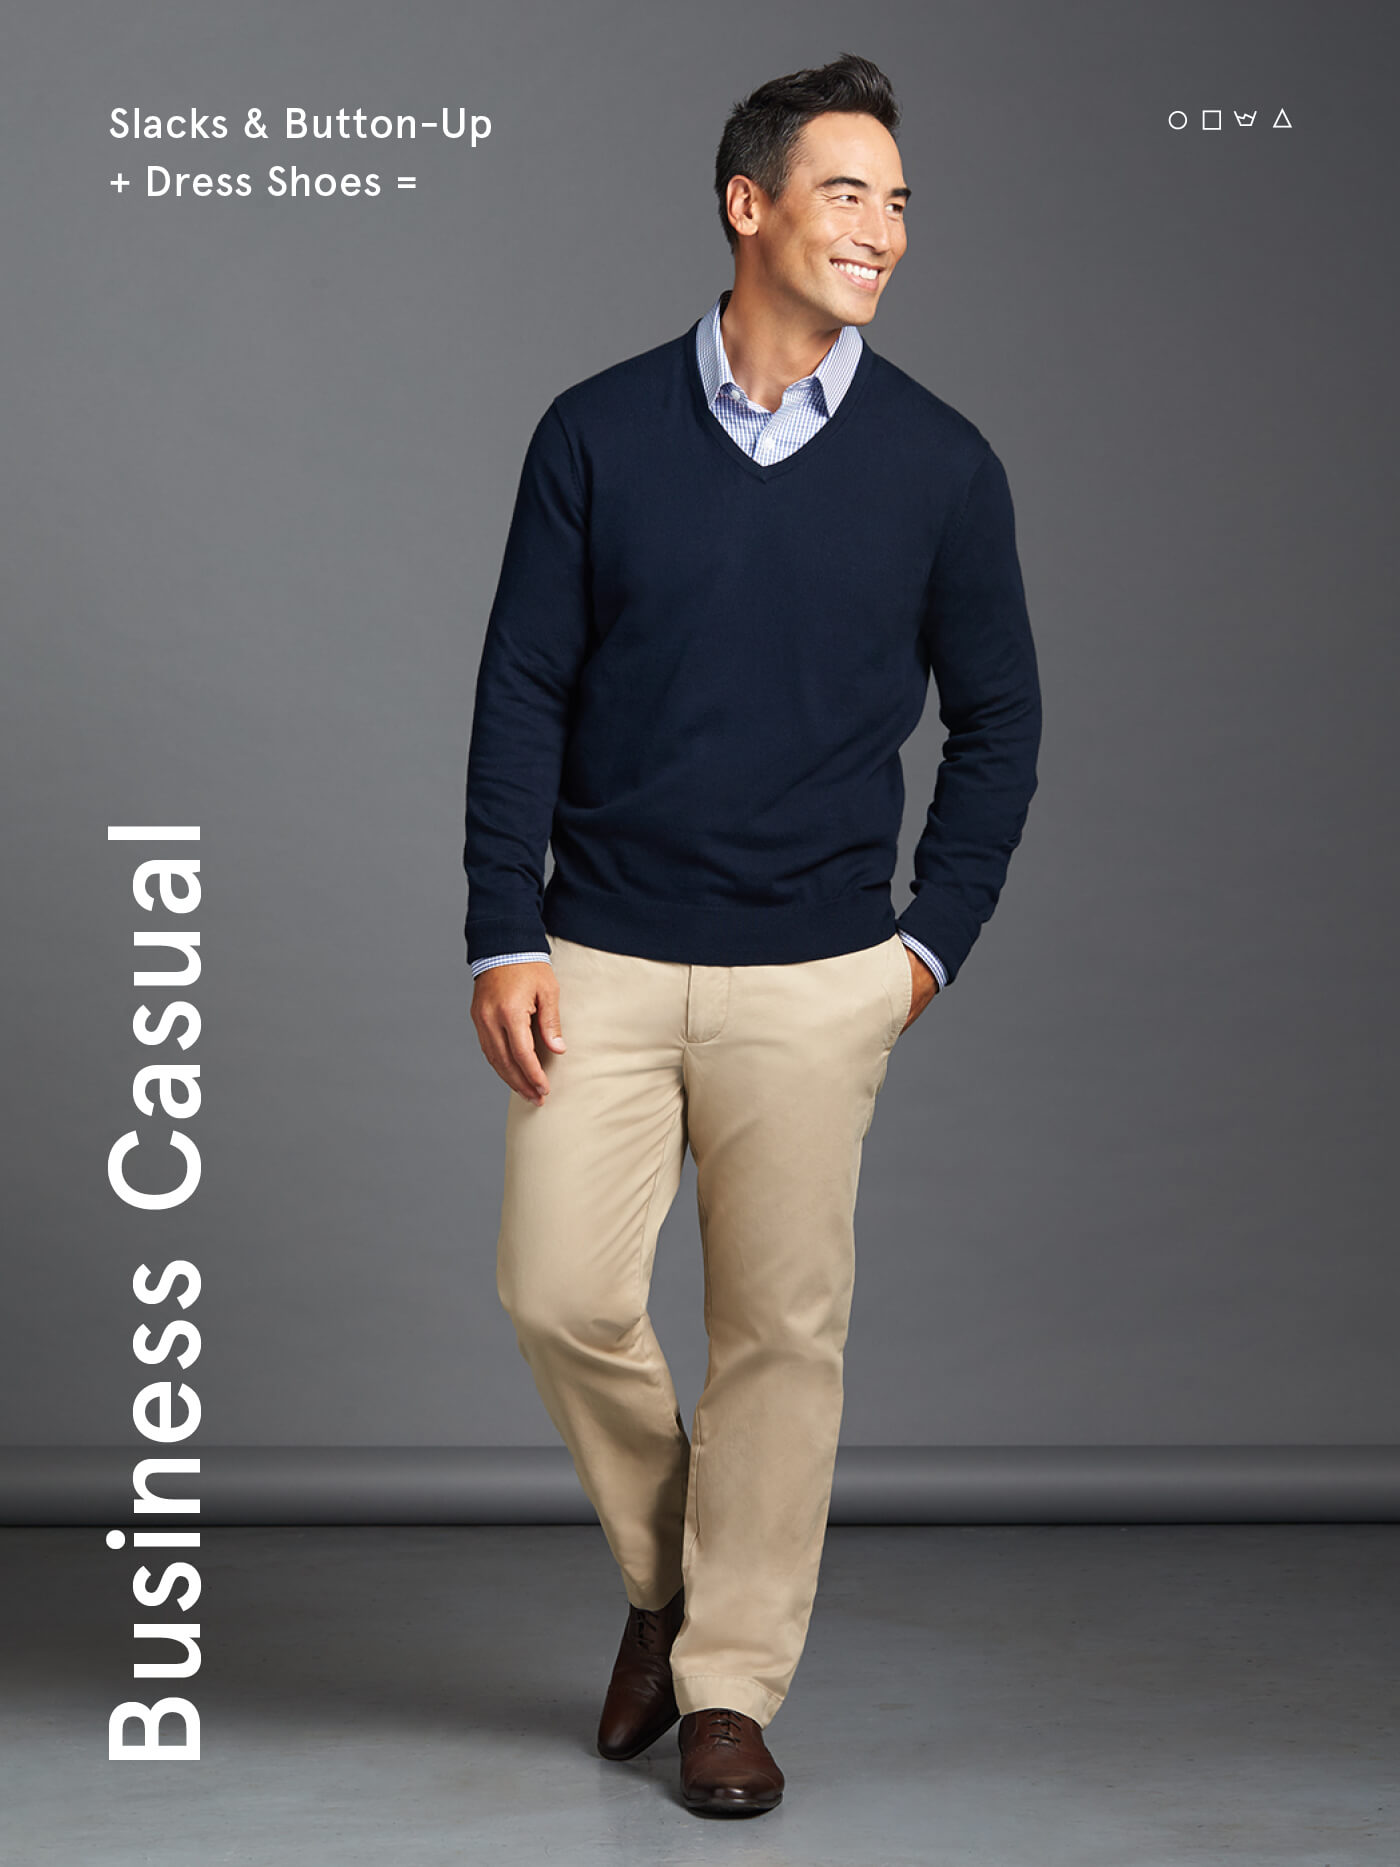 d00b6aaae541 what is business casual for men  slack and a button-up with dress shoes